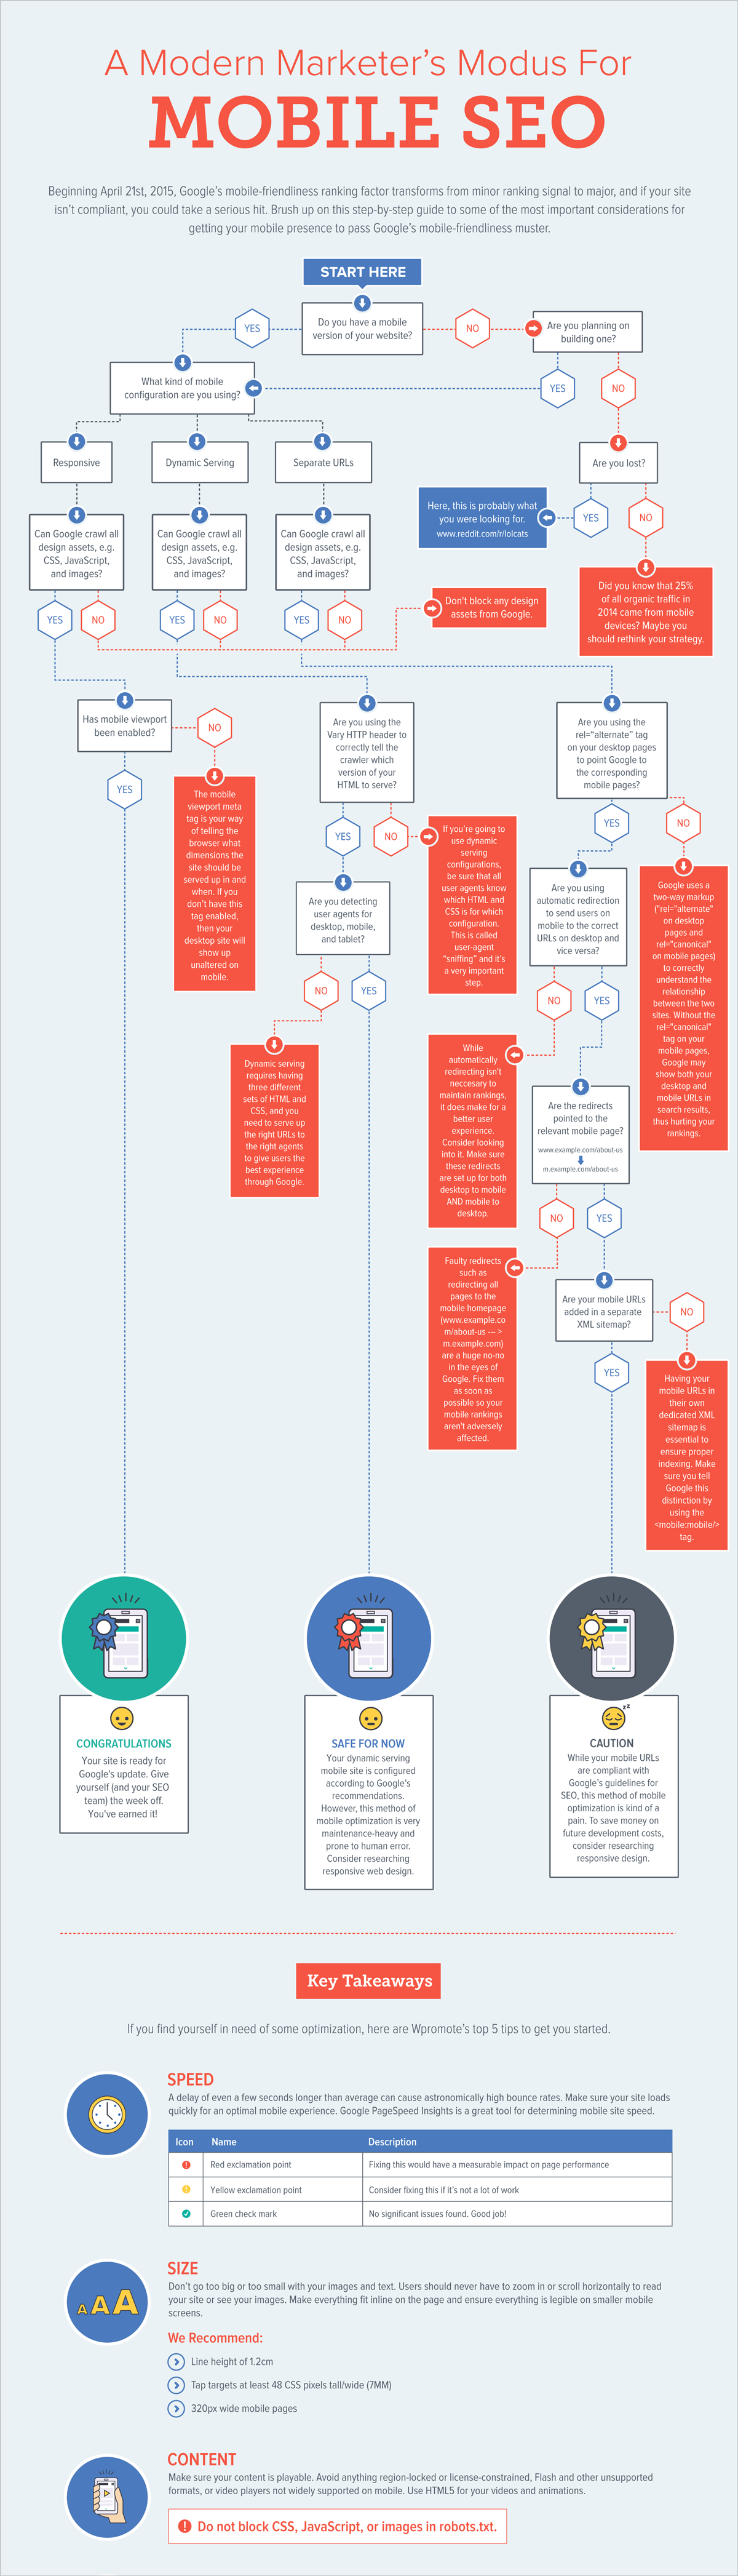 21-Creative-Flowchart-Examples-for-Making-Important-Life-Decisions-Expand-Beyond-the-Flowchart